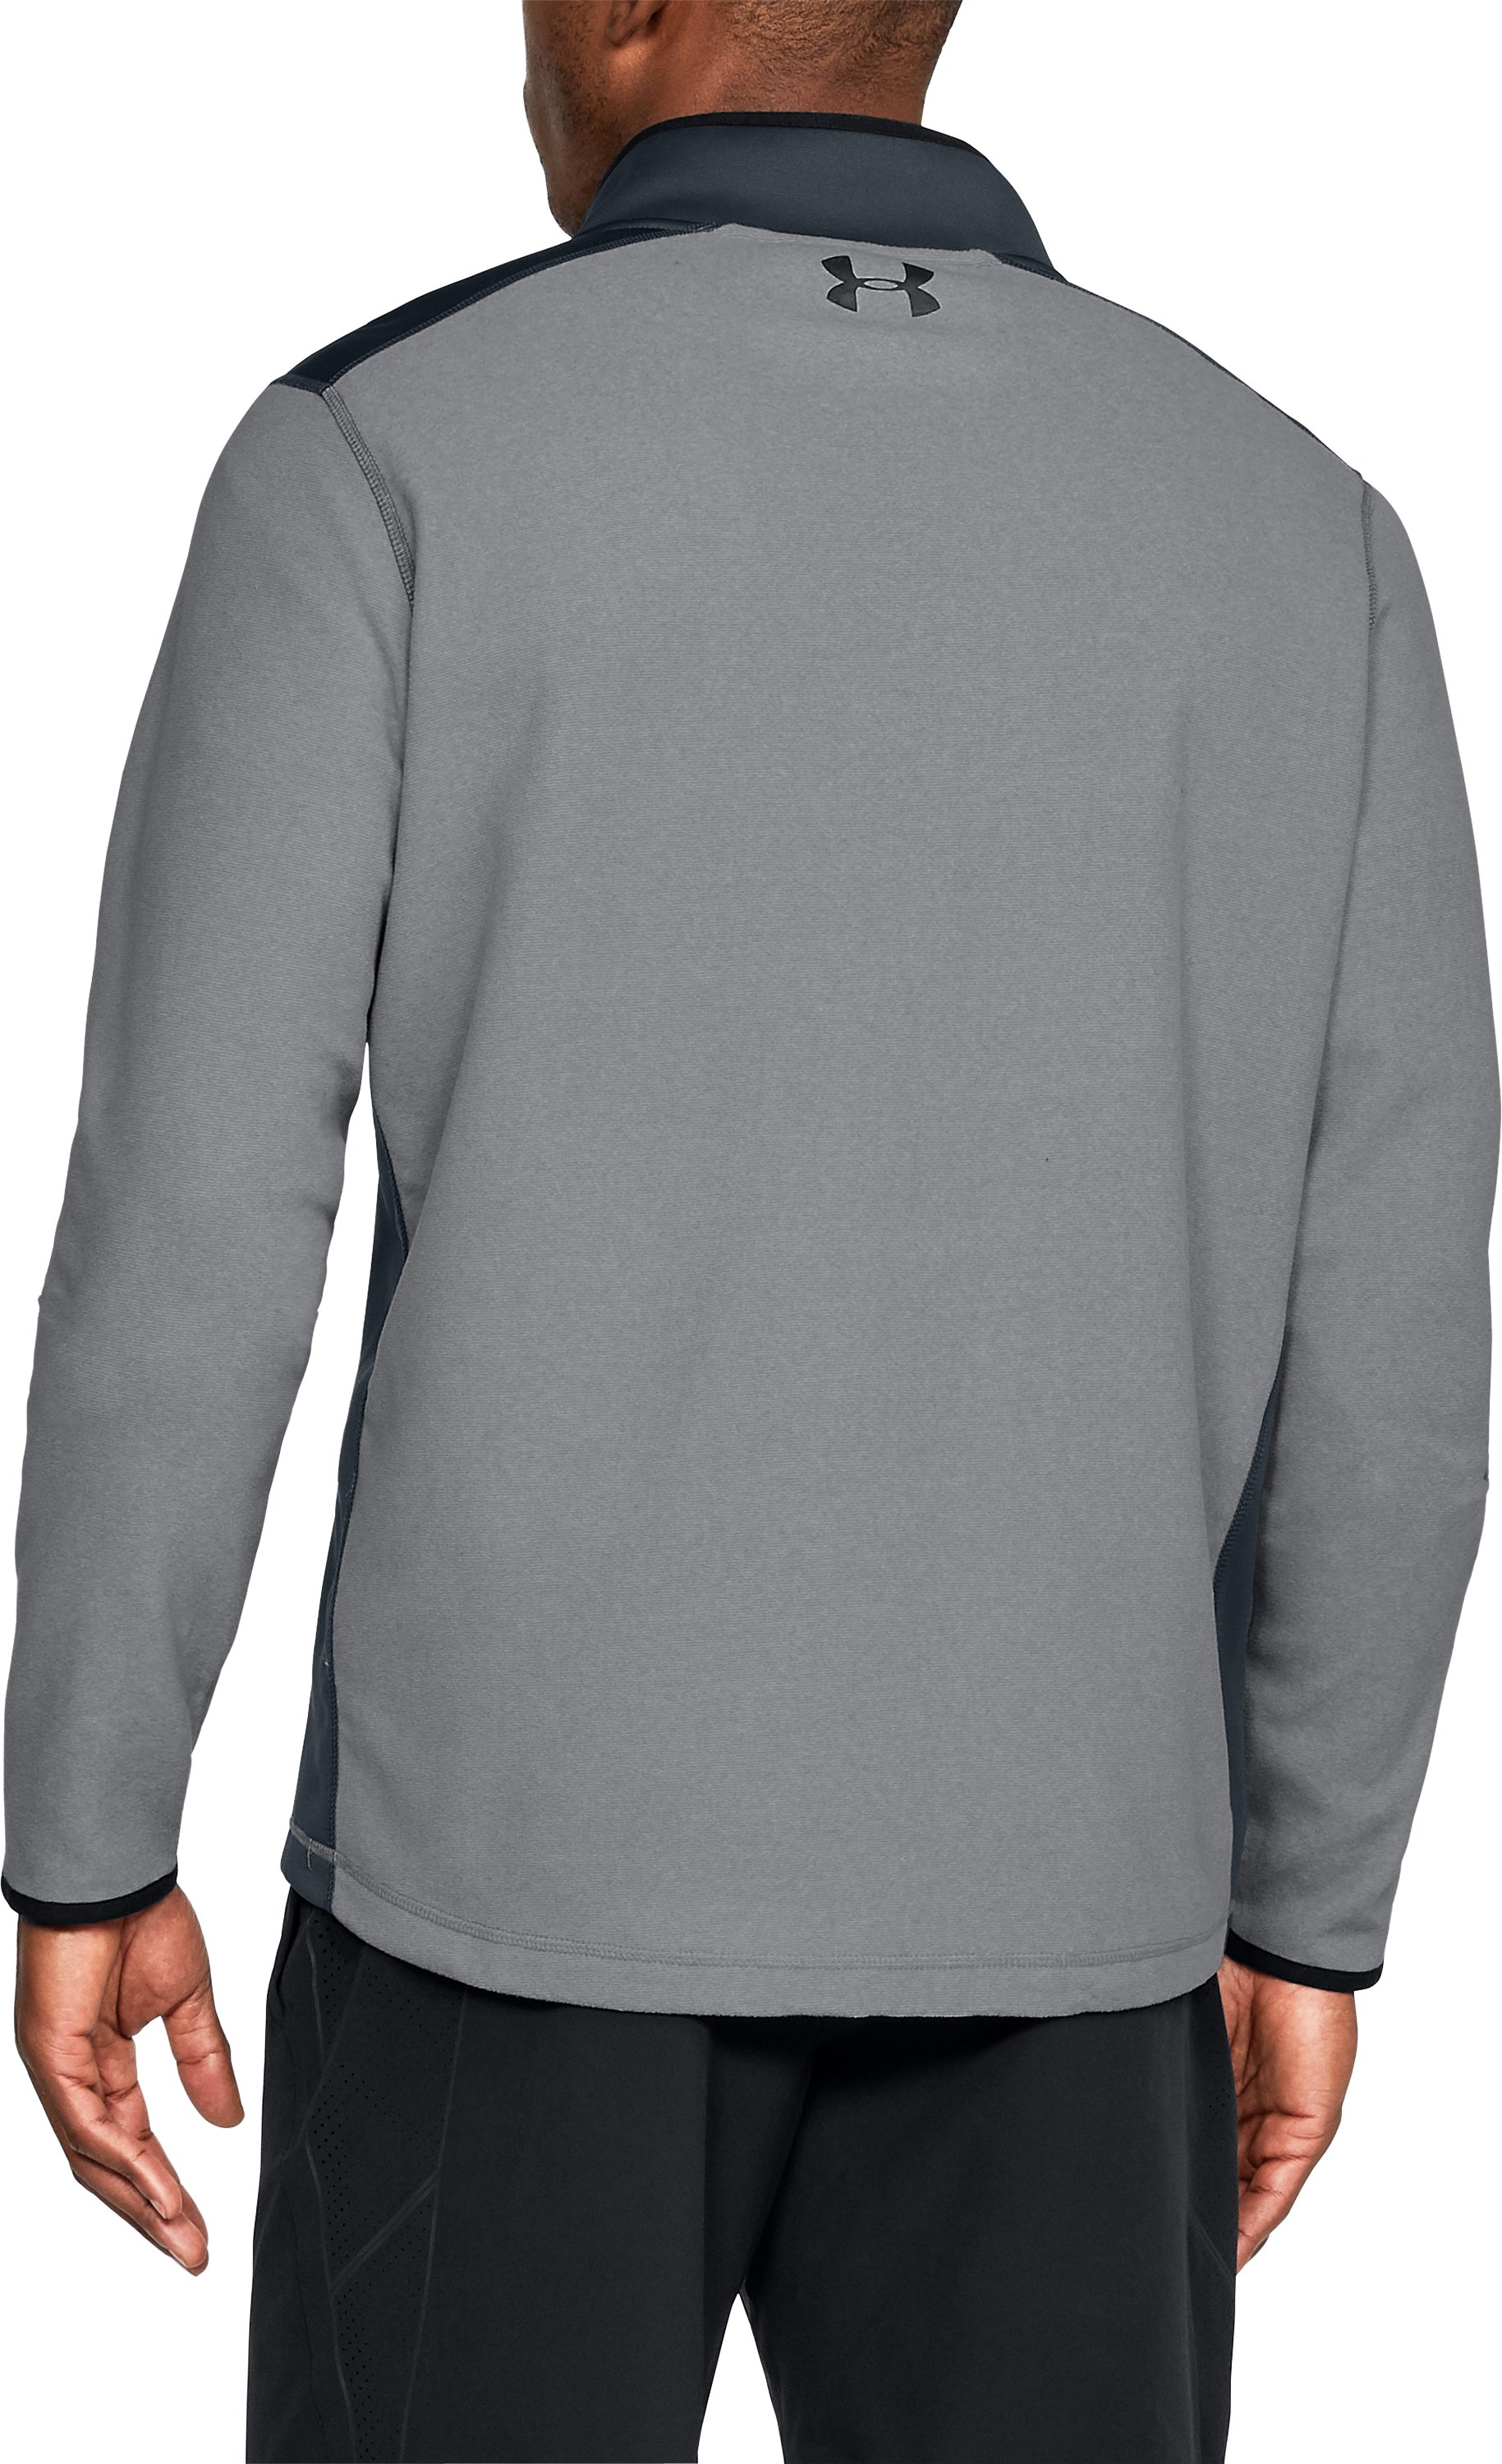 Men's ColdGear® Infrared Fleece ¼ Zip, Graphite,